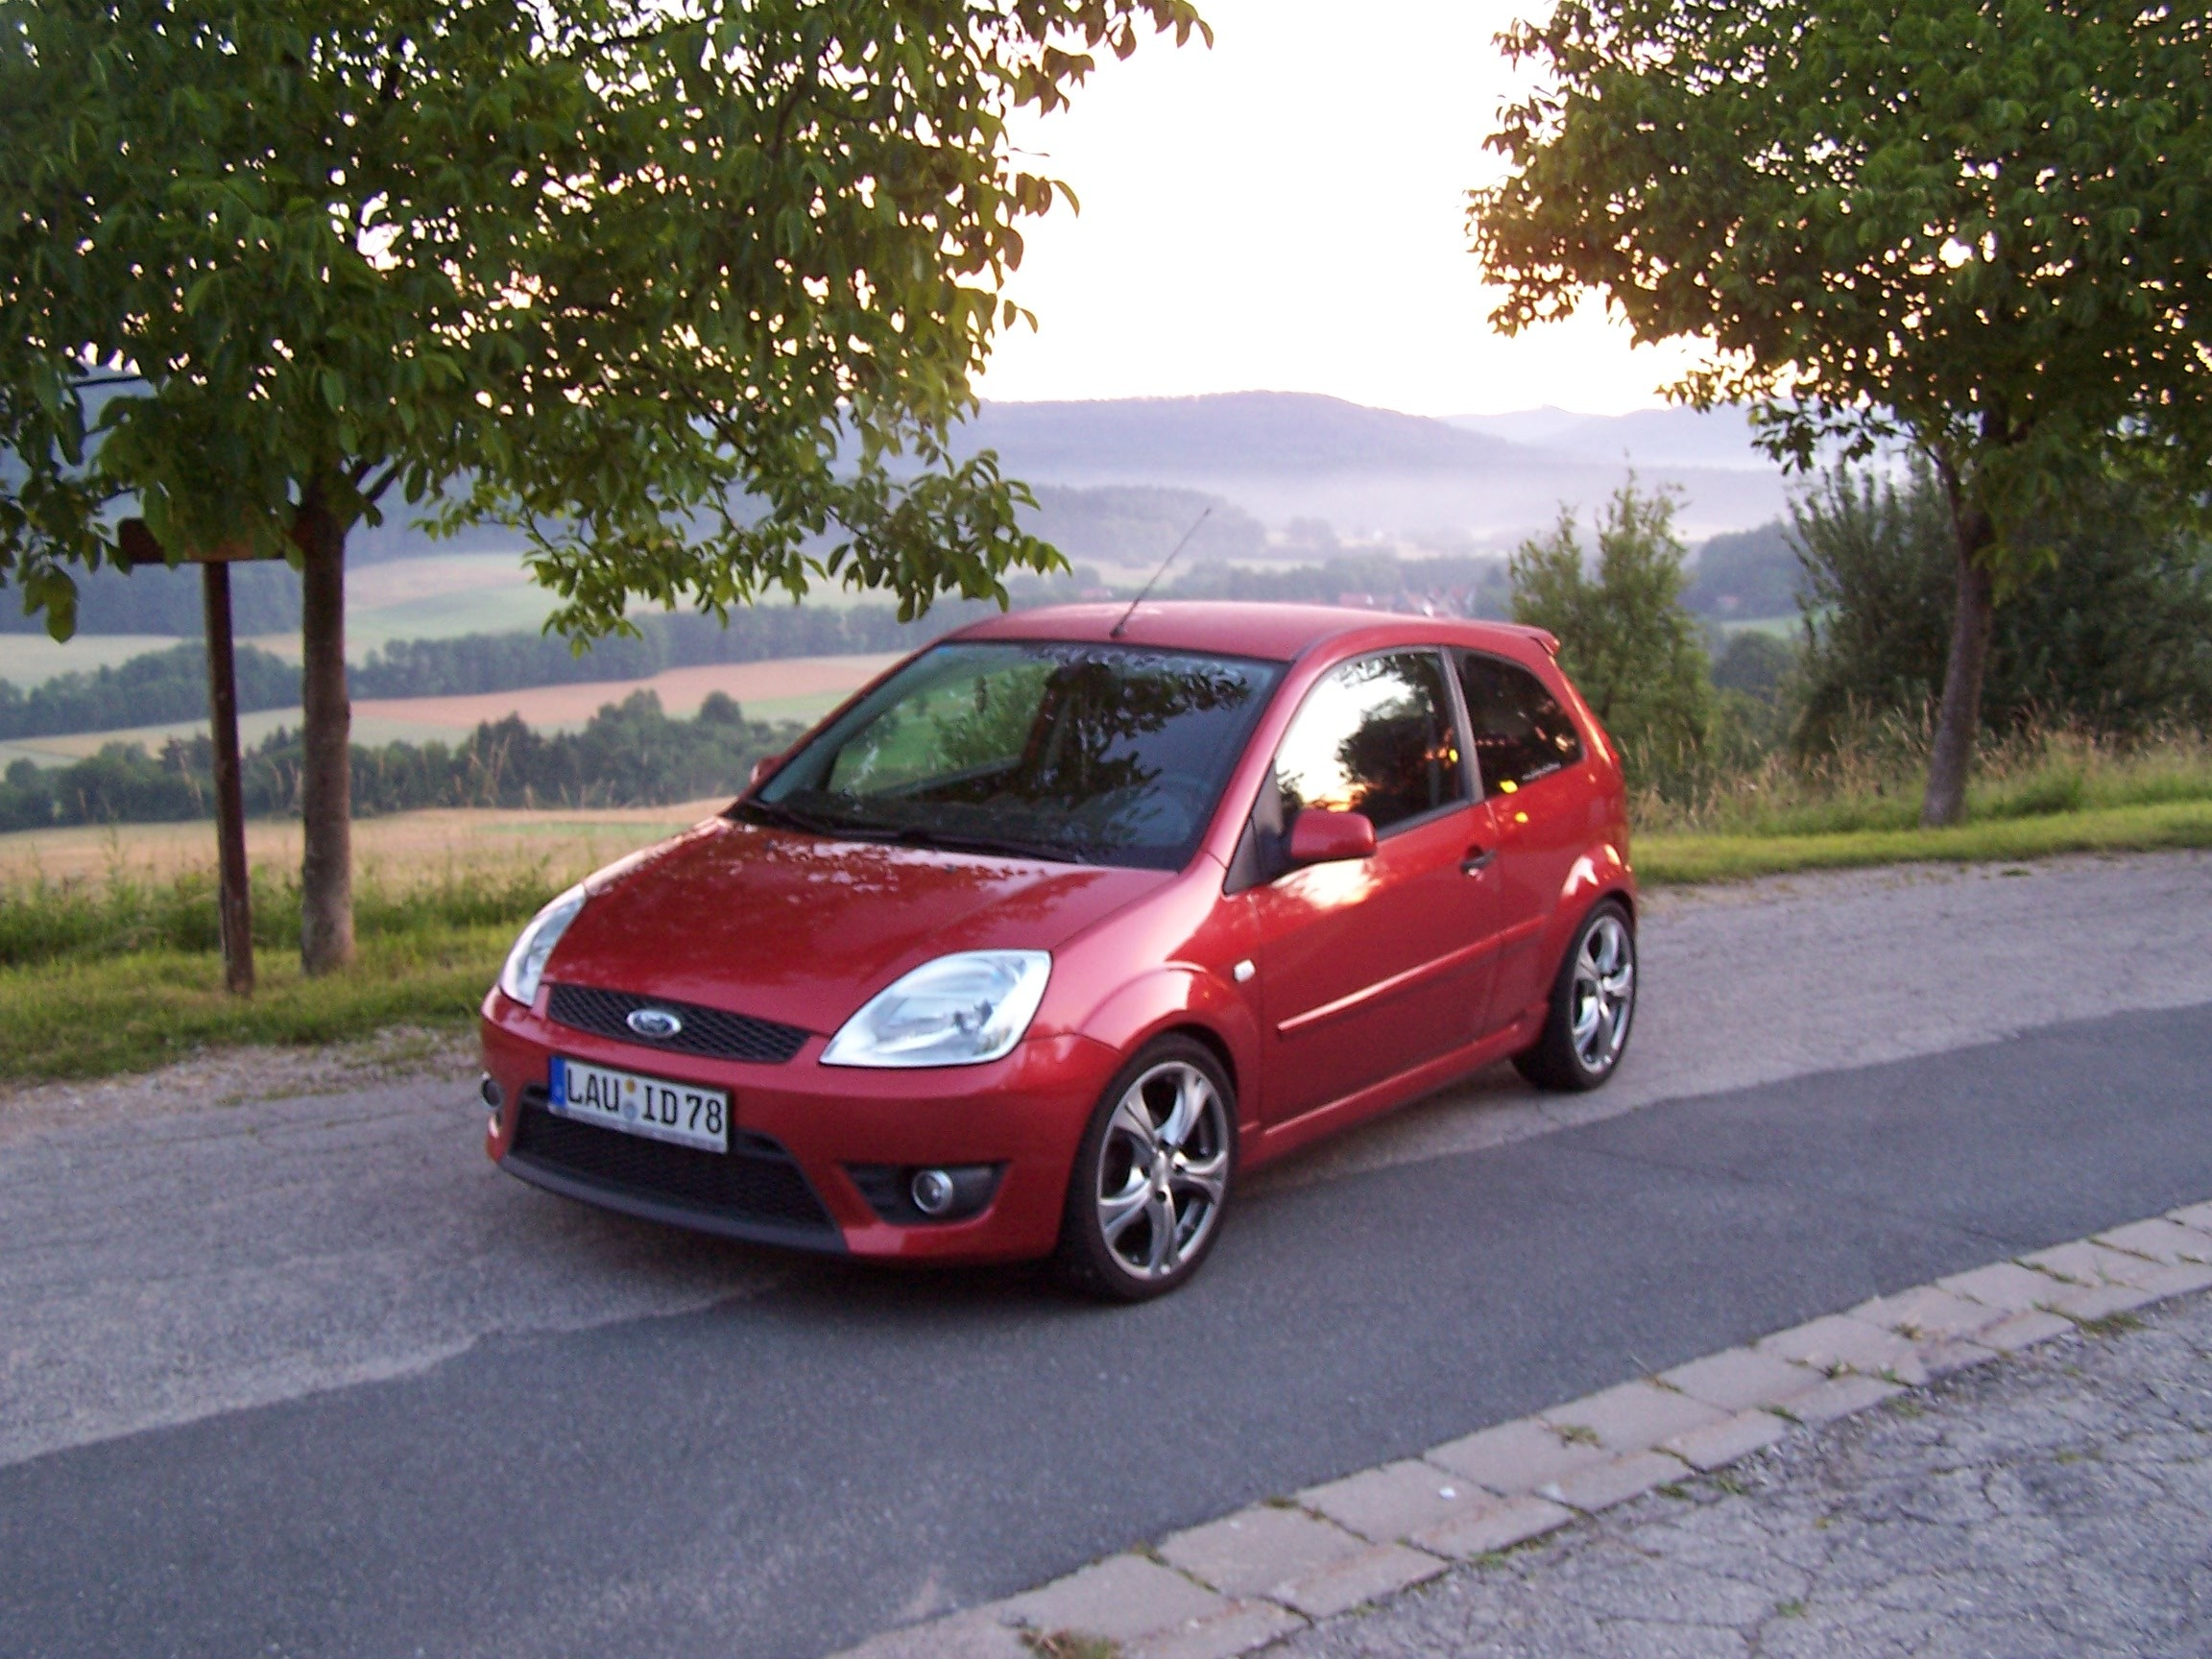 Ford Fiesta 2006 : fips16v 2006 ford fiesta specs photos modification info ~ Nature-et-papiers.com Idées de Décoration